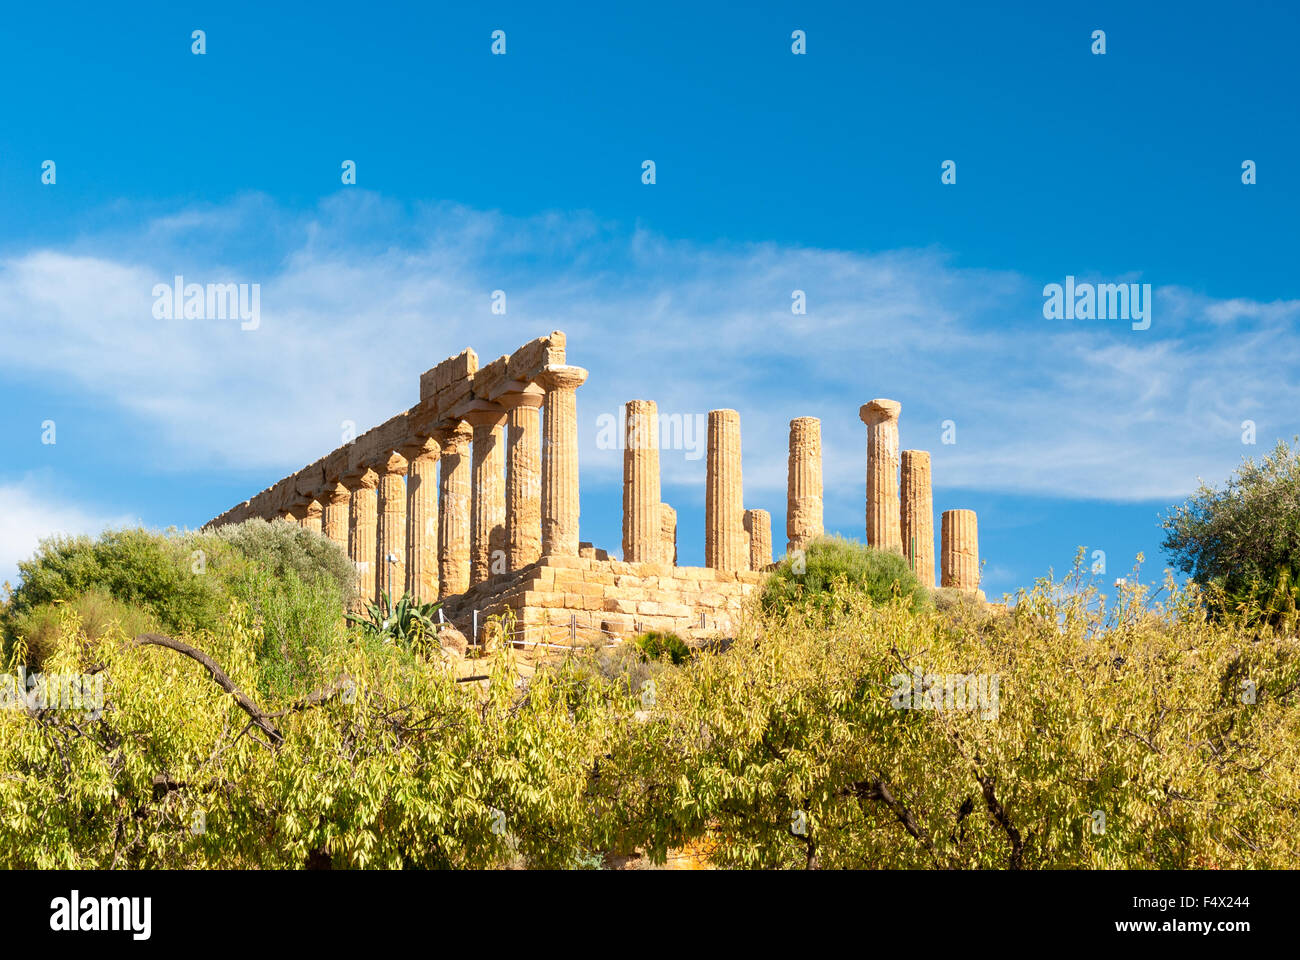 The greek temple of Juno behind almond trees in the Valley of the Temples of Agrigento - Stock Image